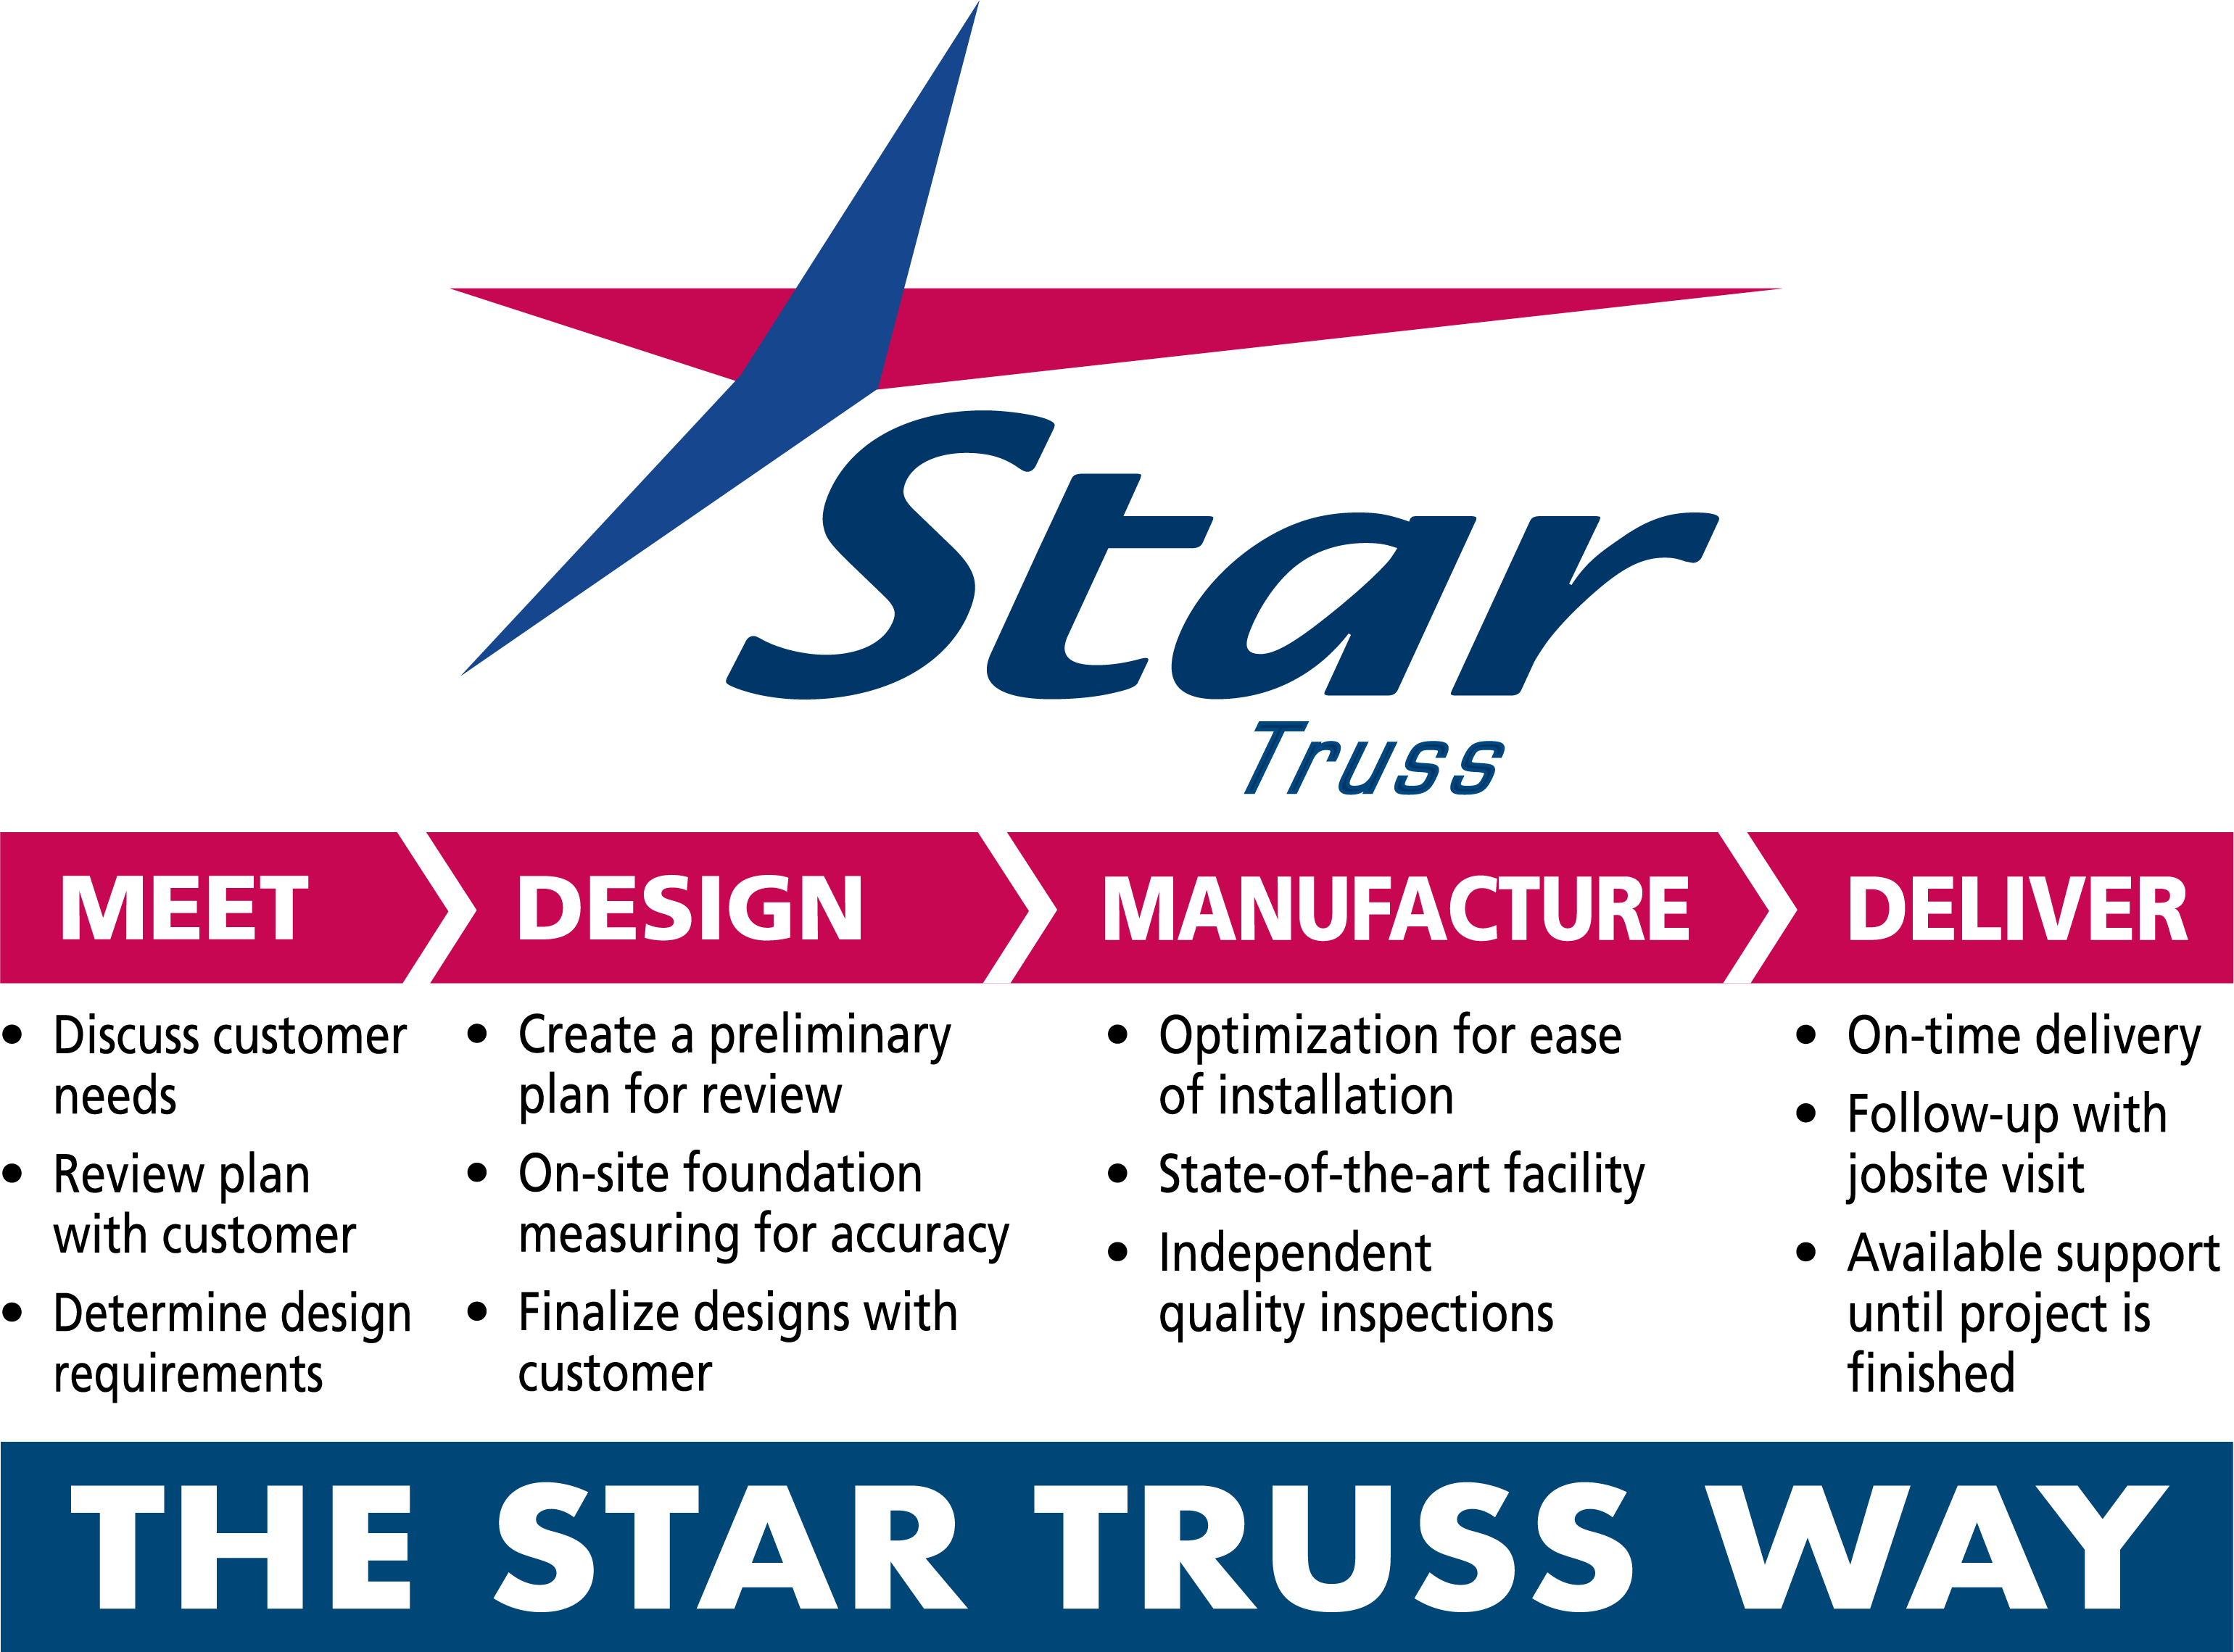 The Star Truss Way